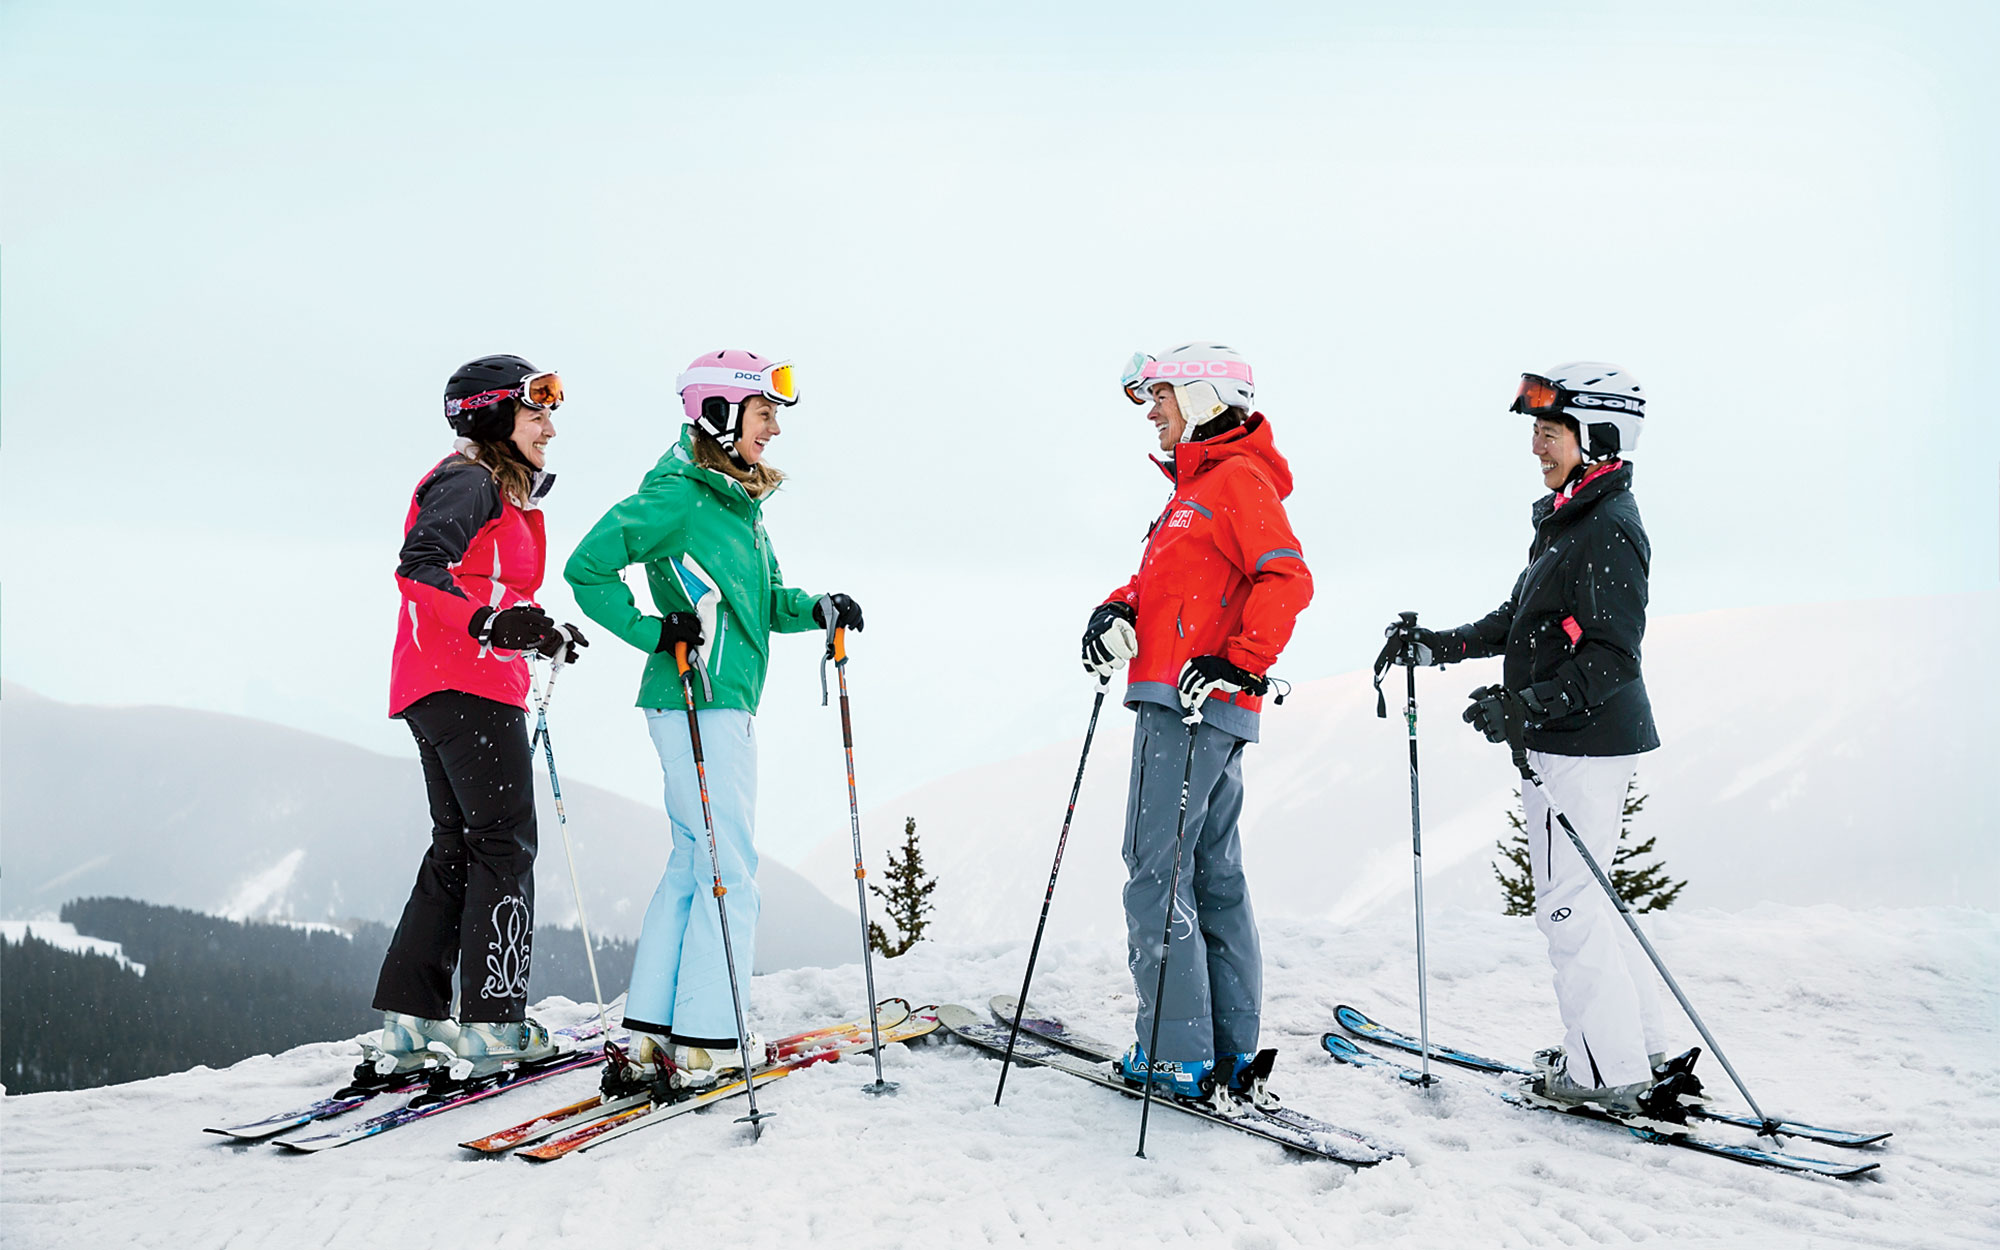 Queens of the Mountain: On the Slopes with Women's Edge